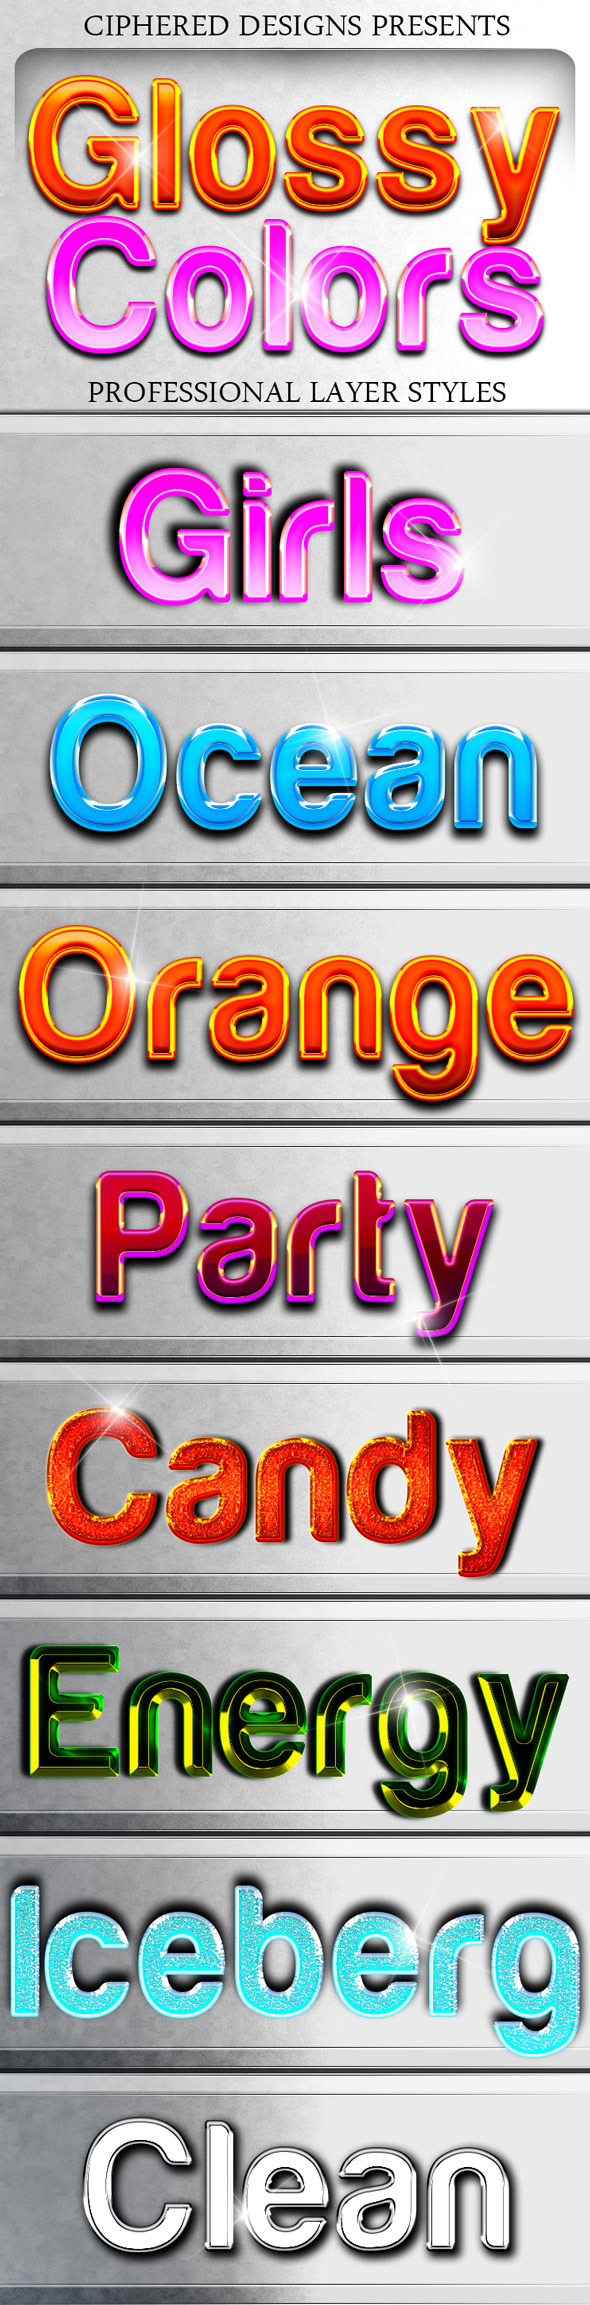 Glossy Colors - Professional Layer Styles - Text Effects Styles